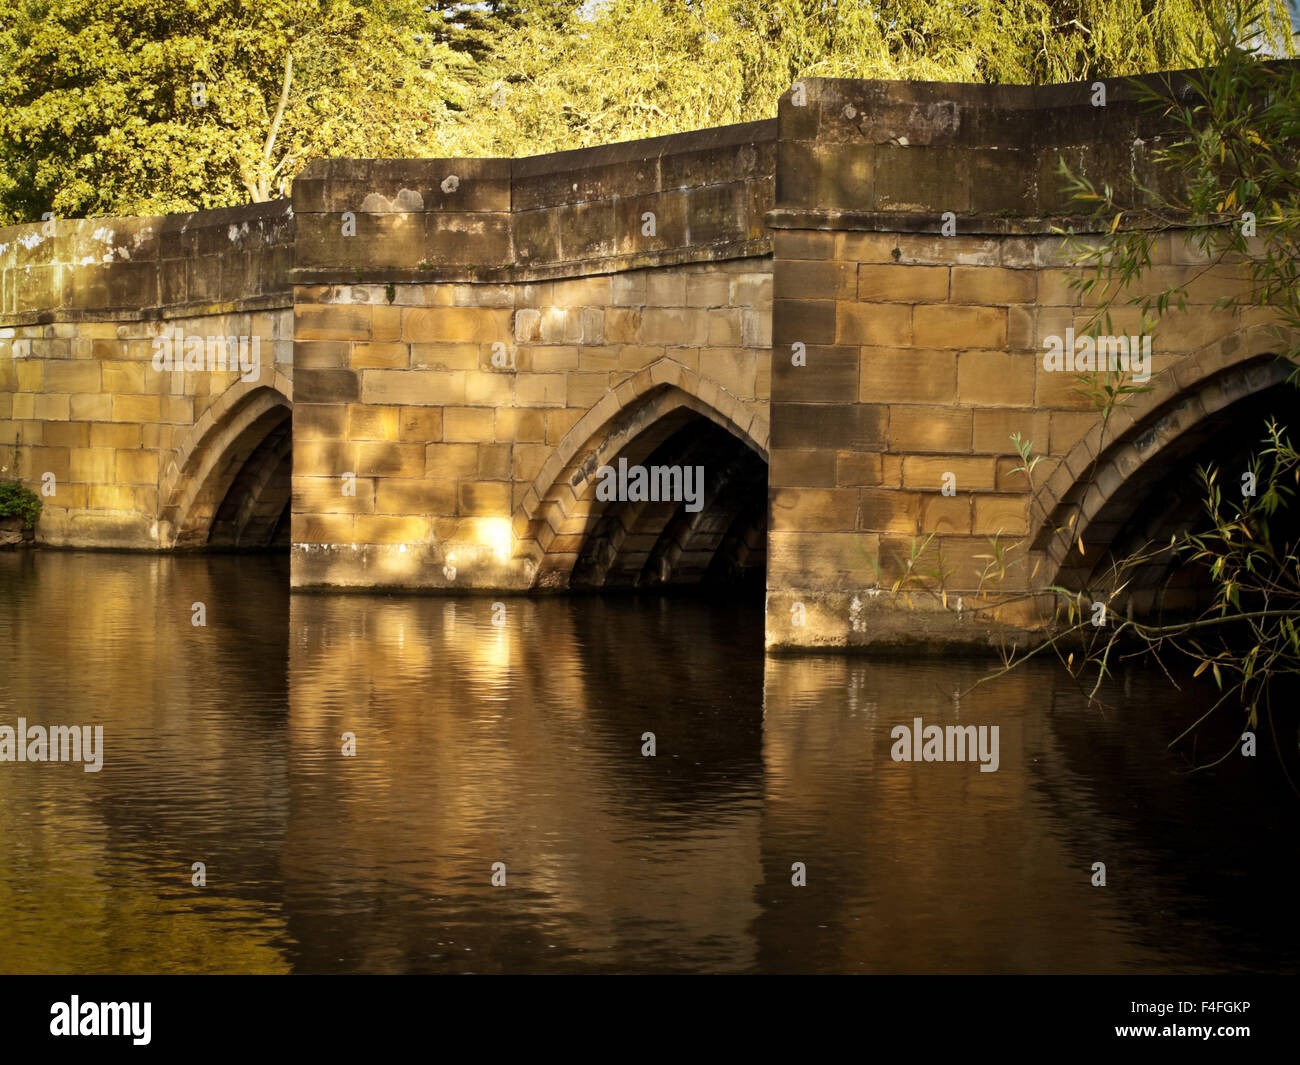 Bakewell bridge and reflections - Stock Image